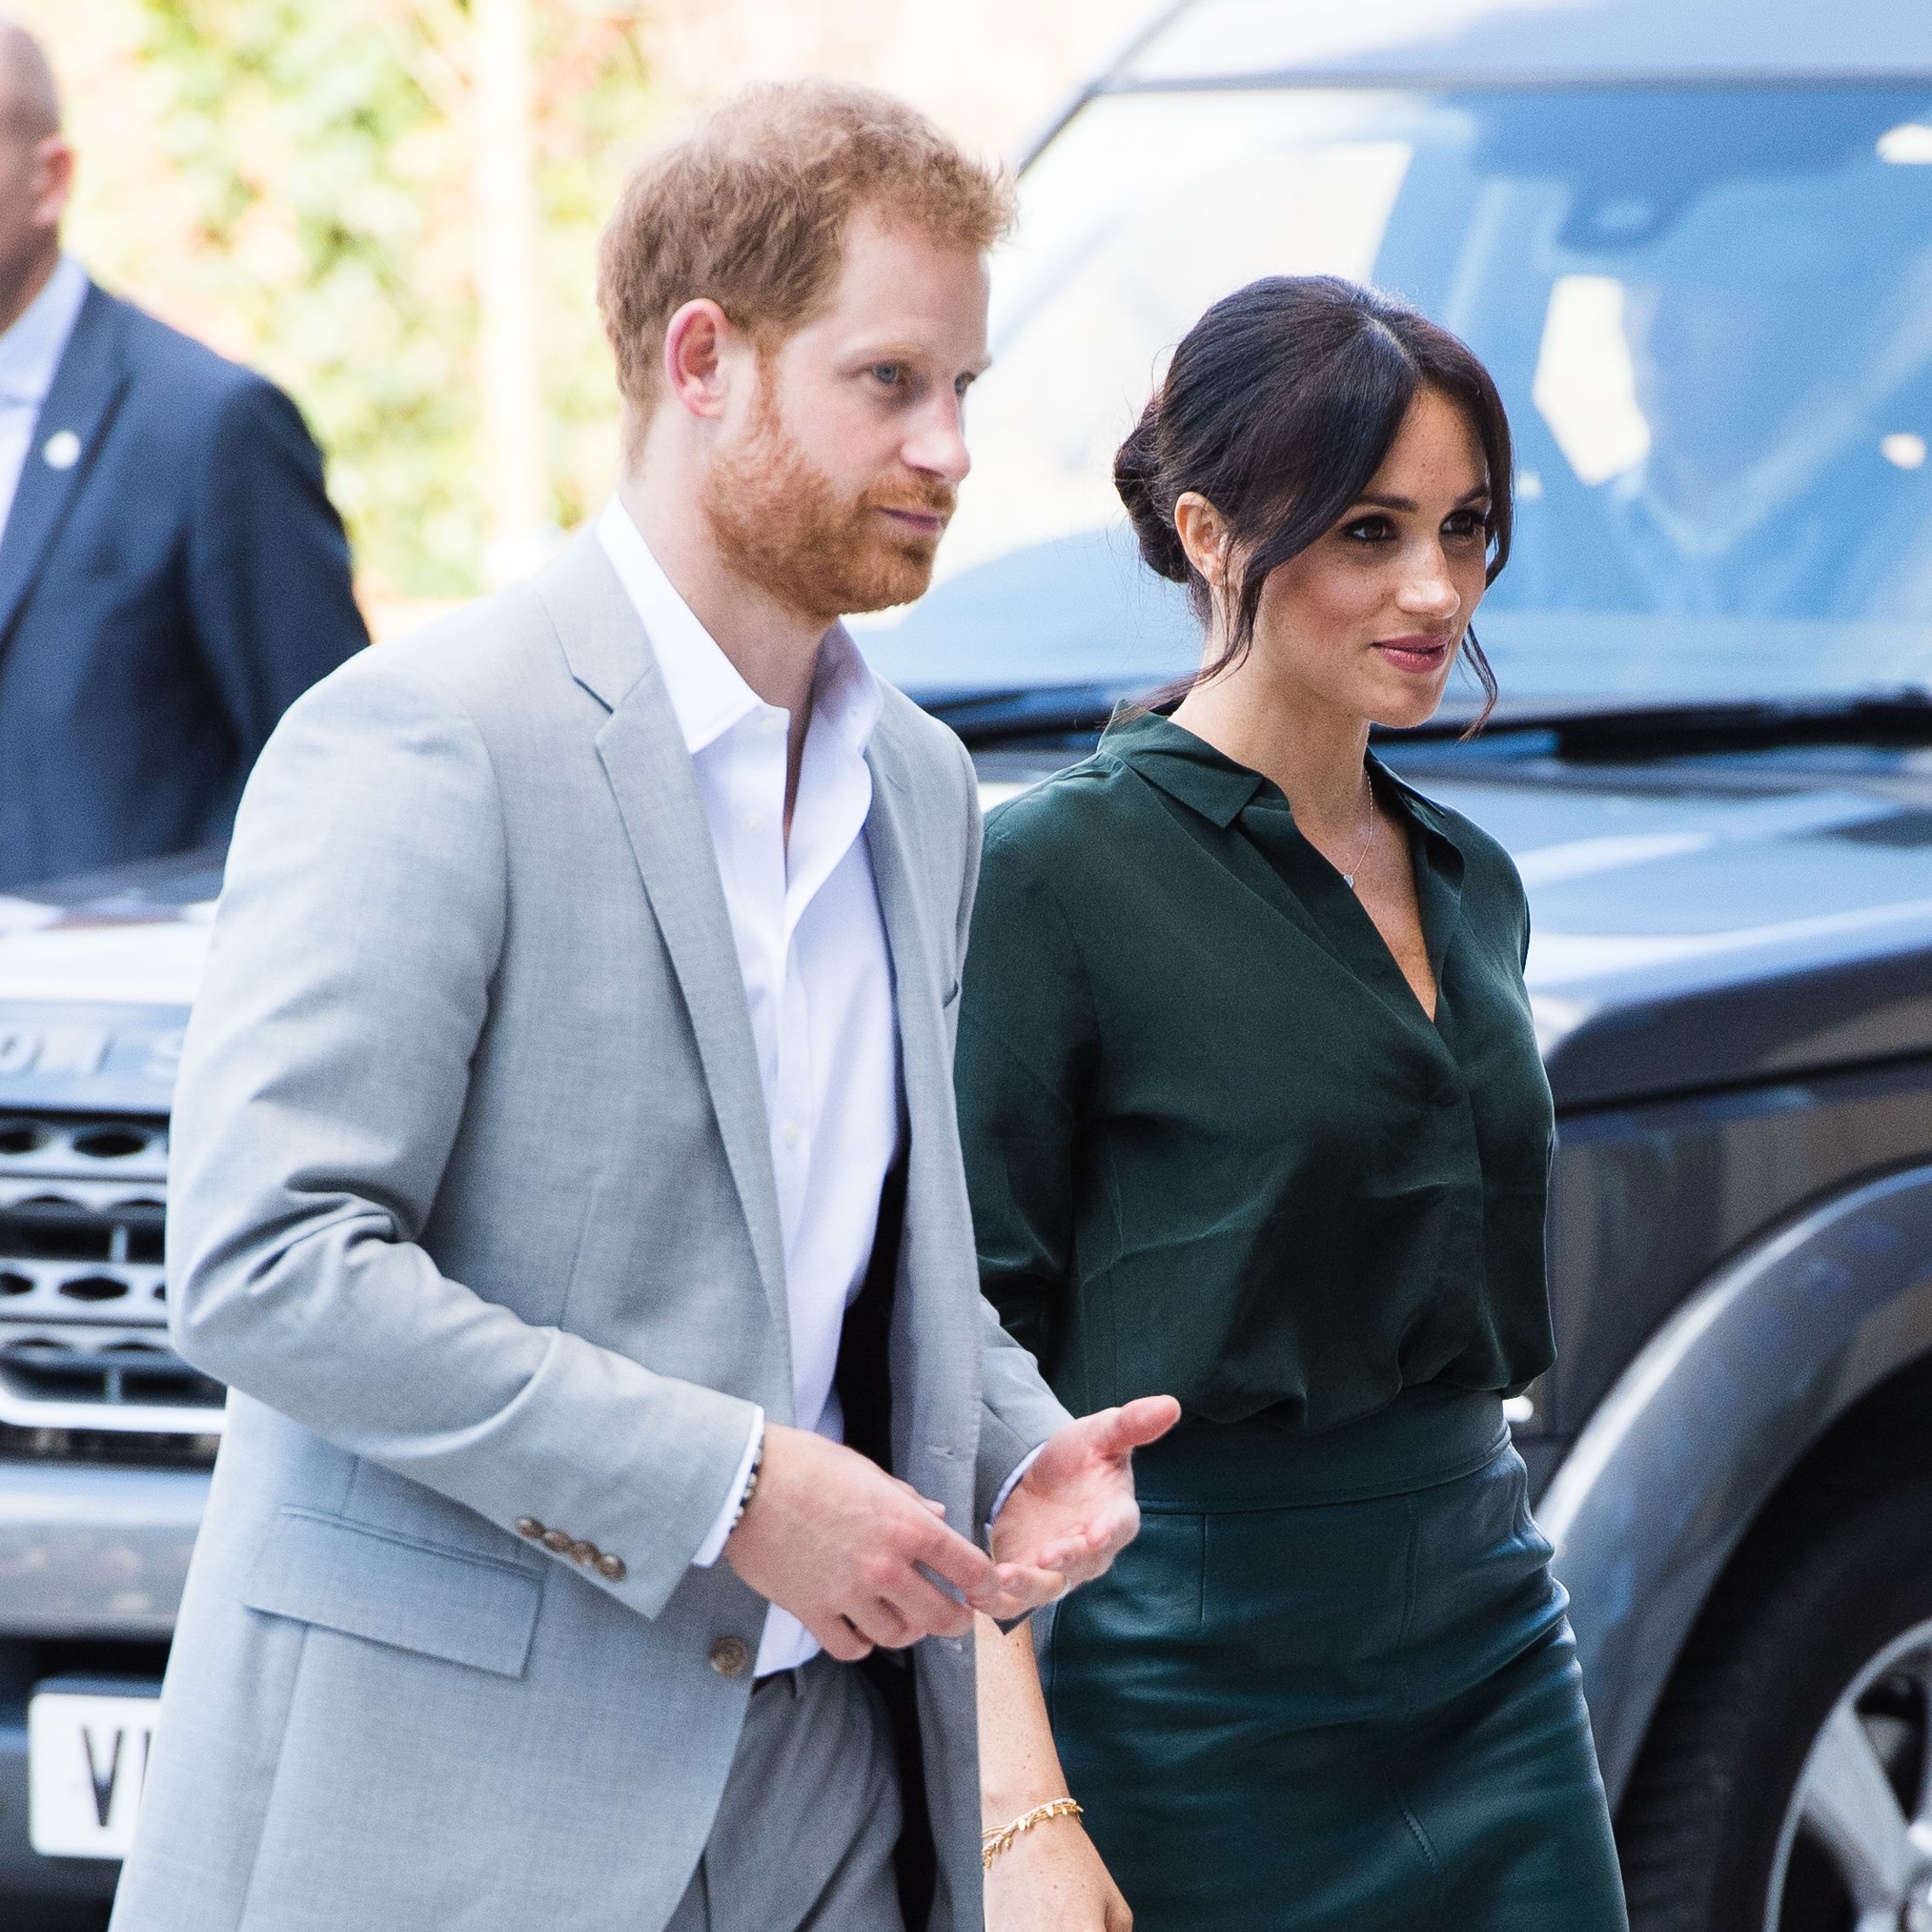 People Are Upset That Meghan and Harry Announced Their Pregnancy on a Sensitive Day